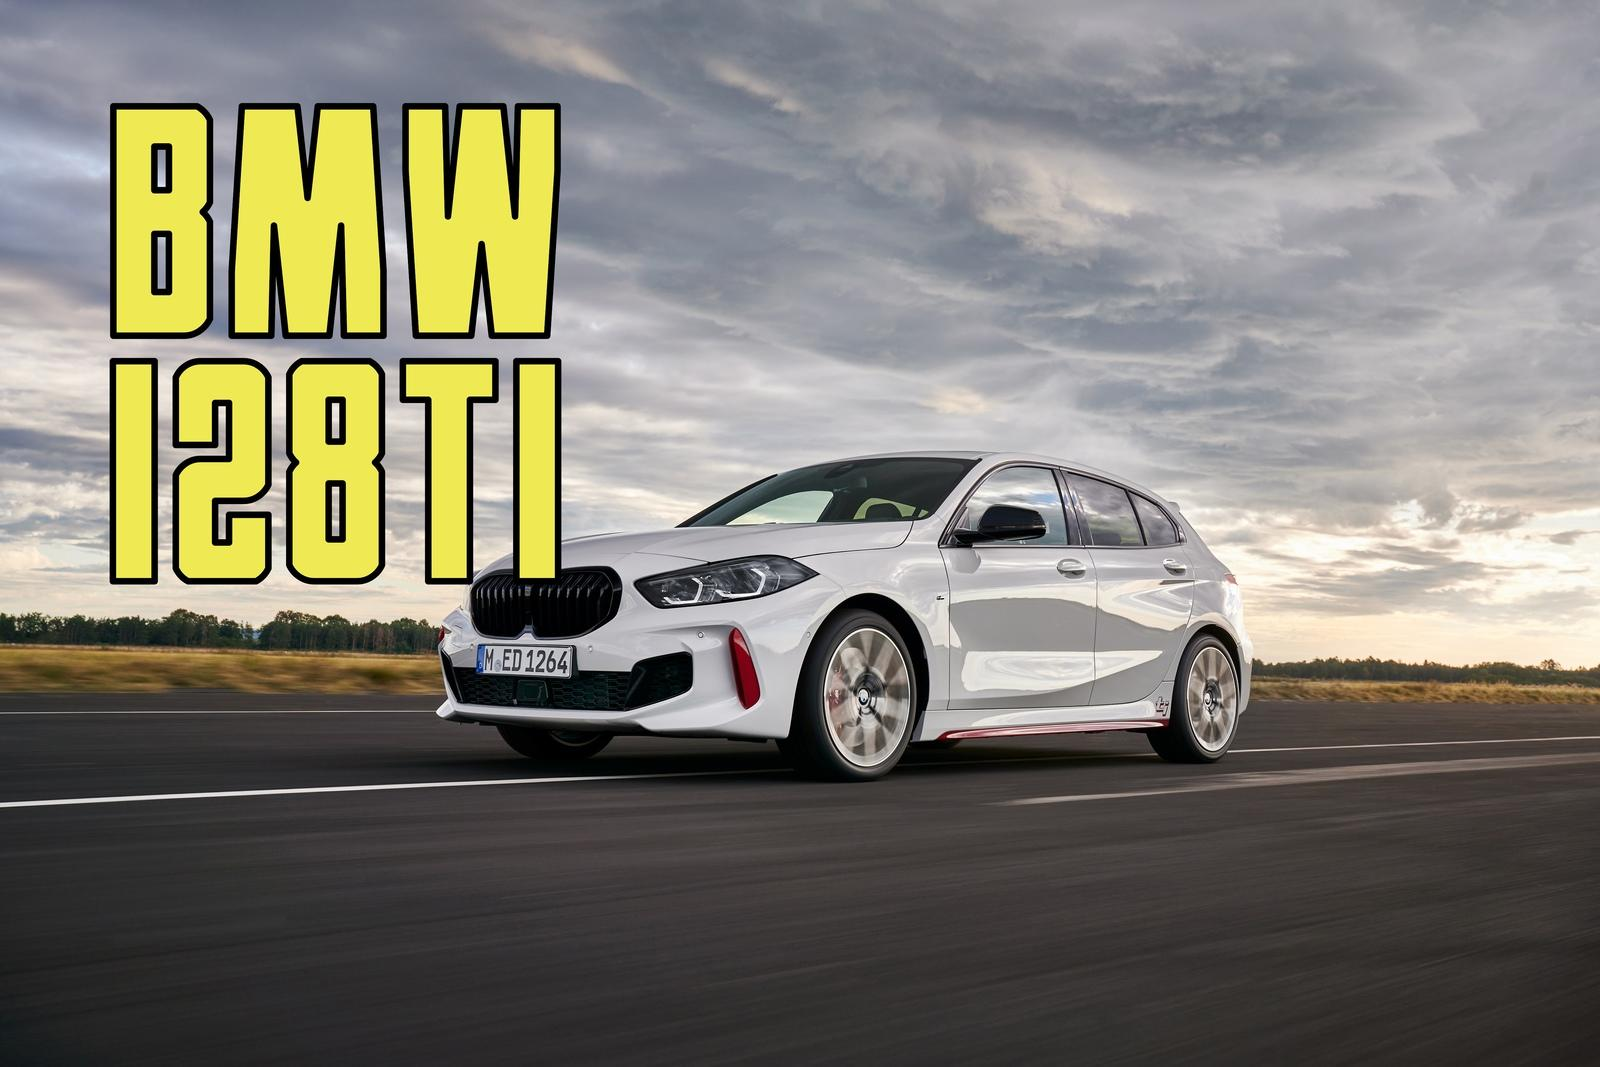 the 2021 bmw 128ti is a detuned m135i aimed at the vw golf gti